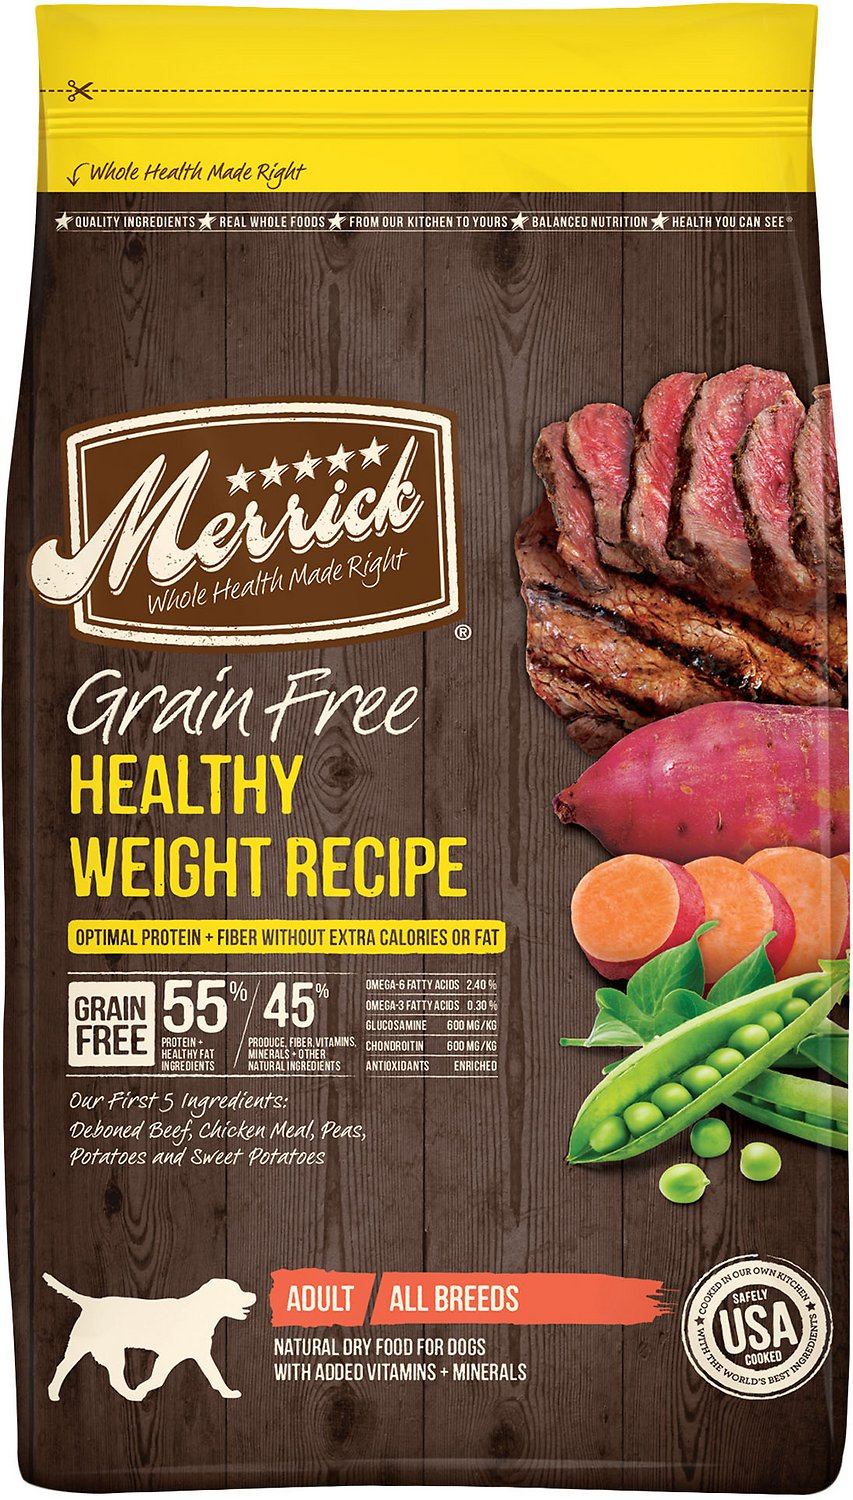 Merrick Grain-Free Healthy Weight Recipe Dry Dog Food Image